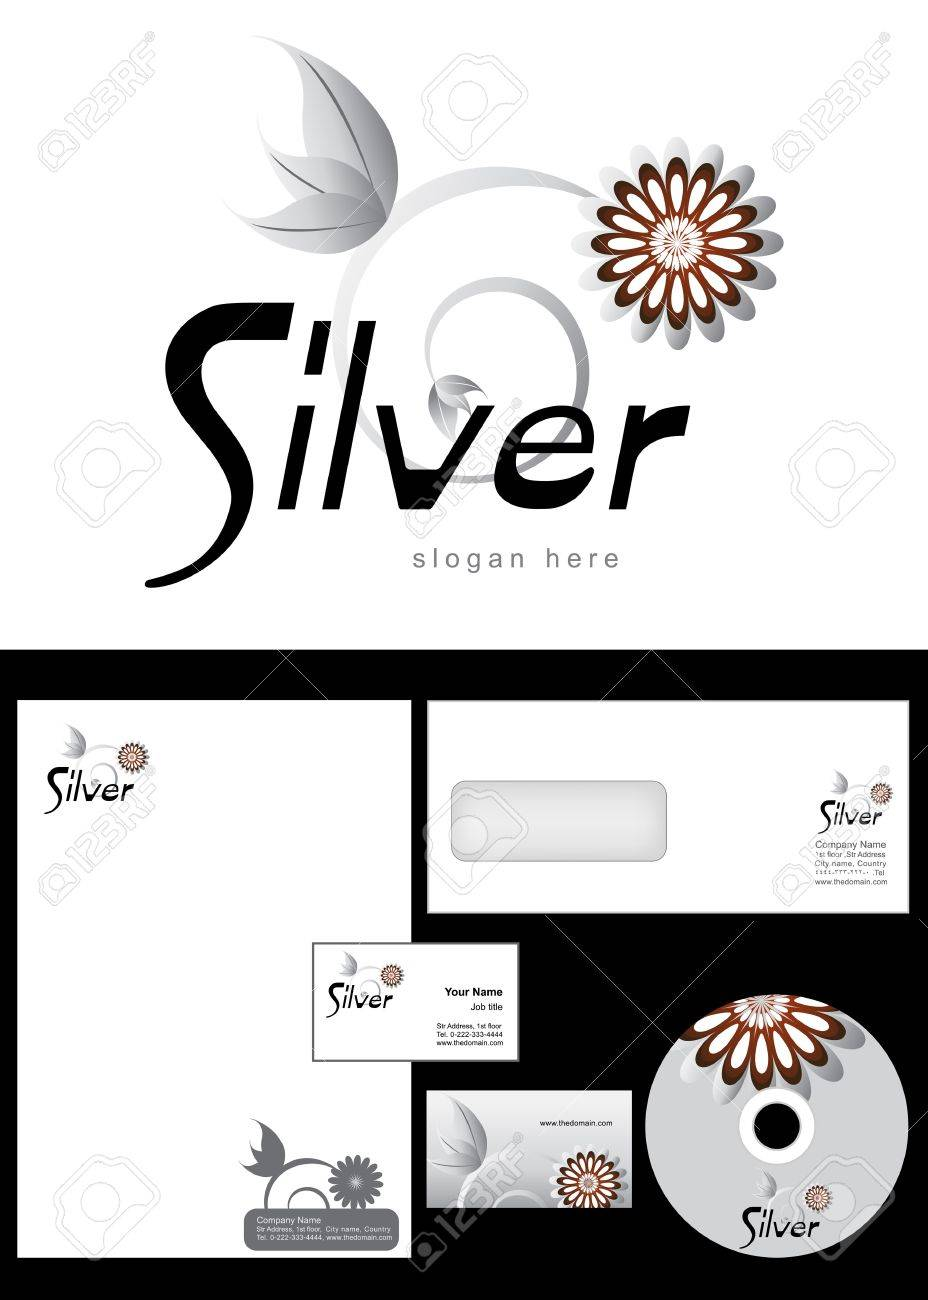 Silver logo design and corporate identity package including logo silver logo design and corporate identity package including logo letterhead business card envelope reheart Choice Image